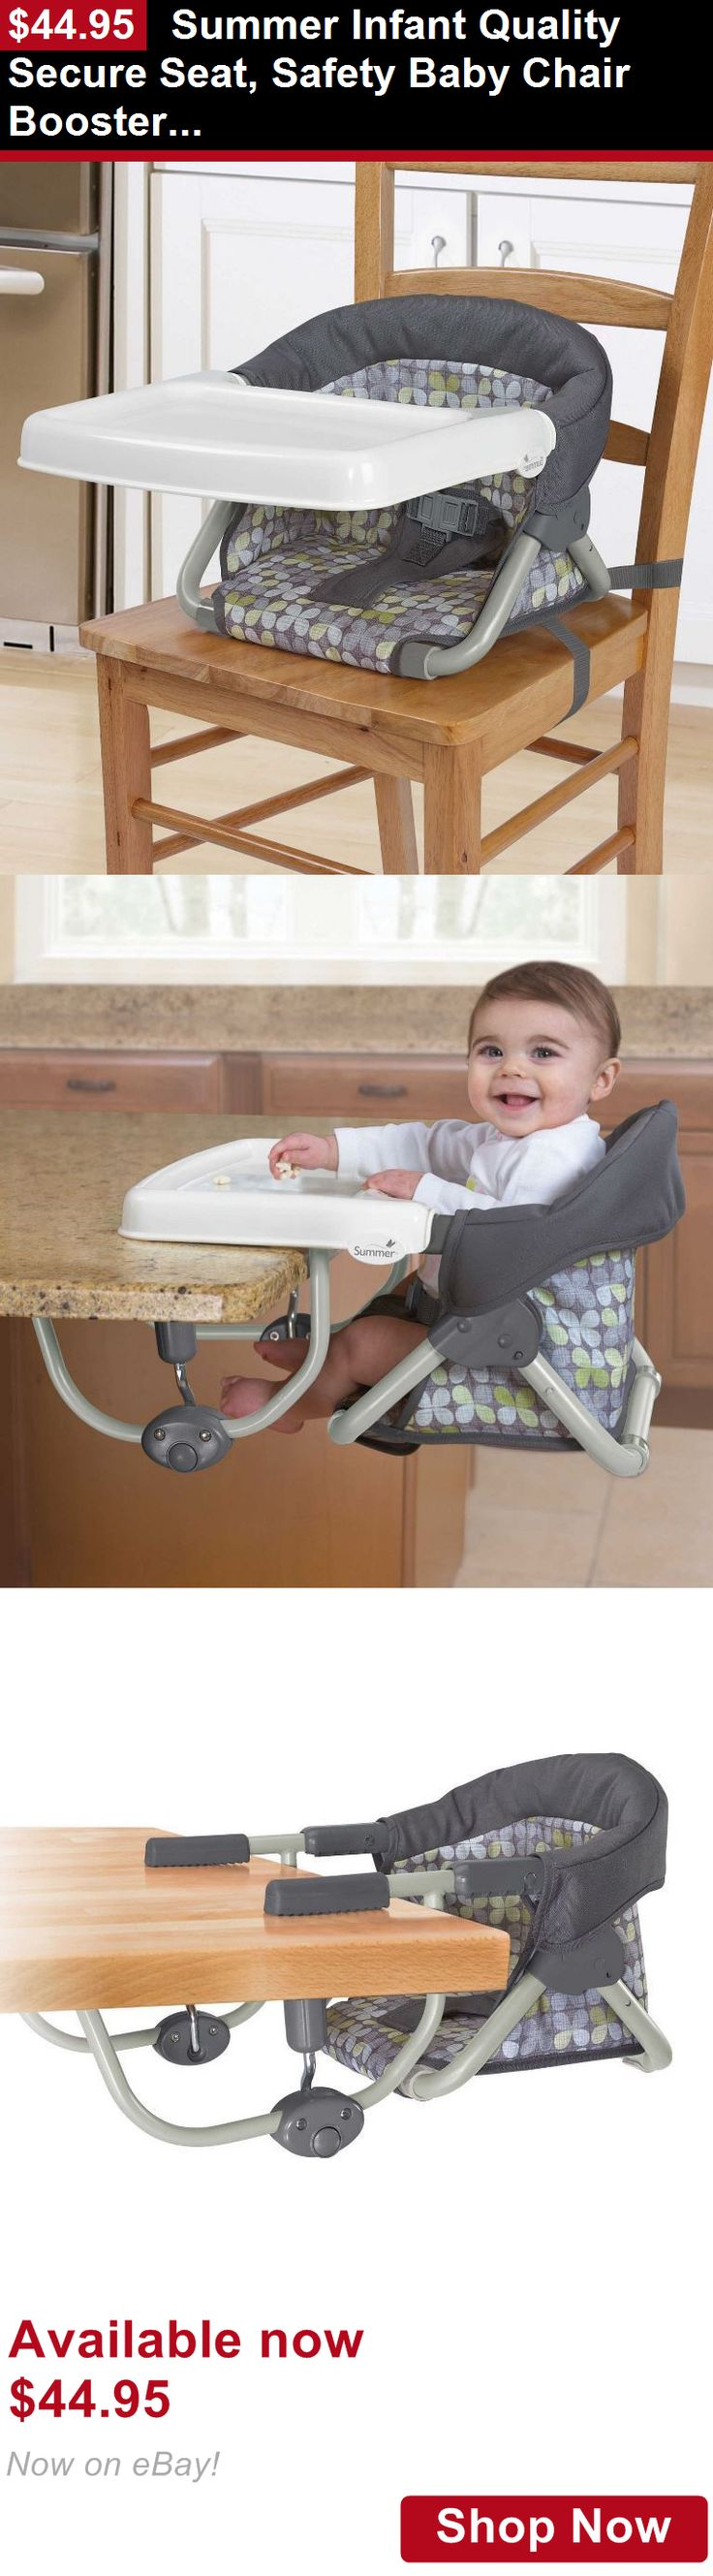 Booster Chairs: Summer Infant Quality Secure Seat, Safety Baby Chair Booster, Compact-Fold, Grey BUY IT NOW ONLY: $44.95